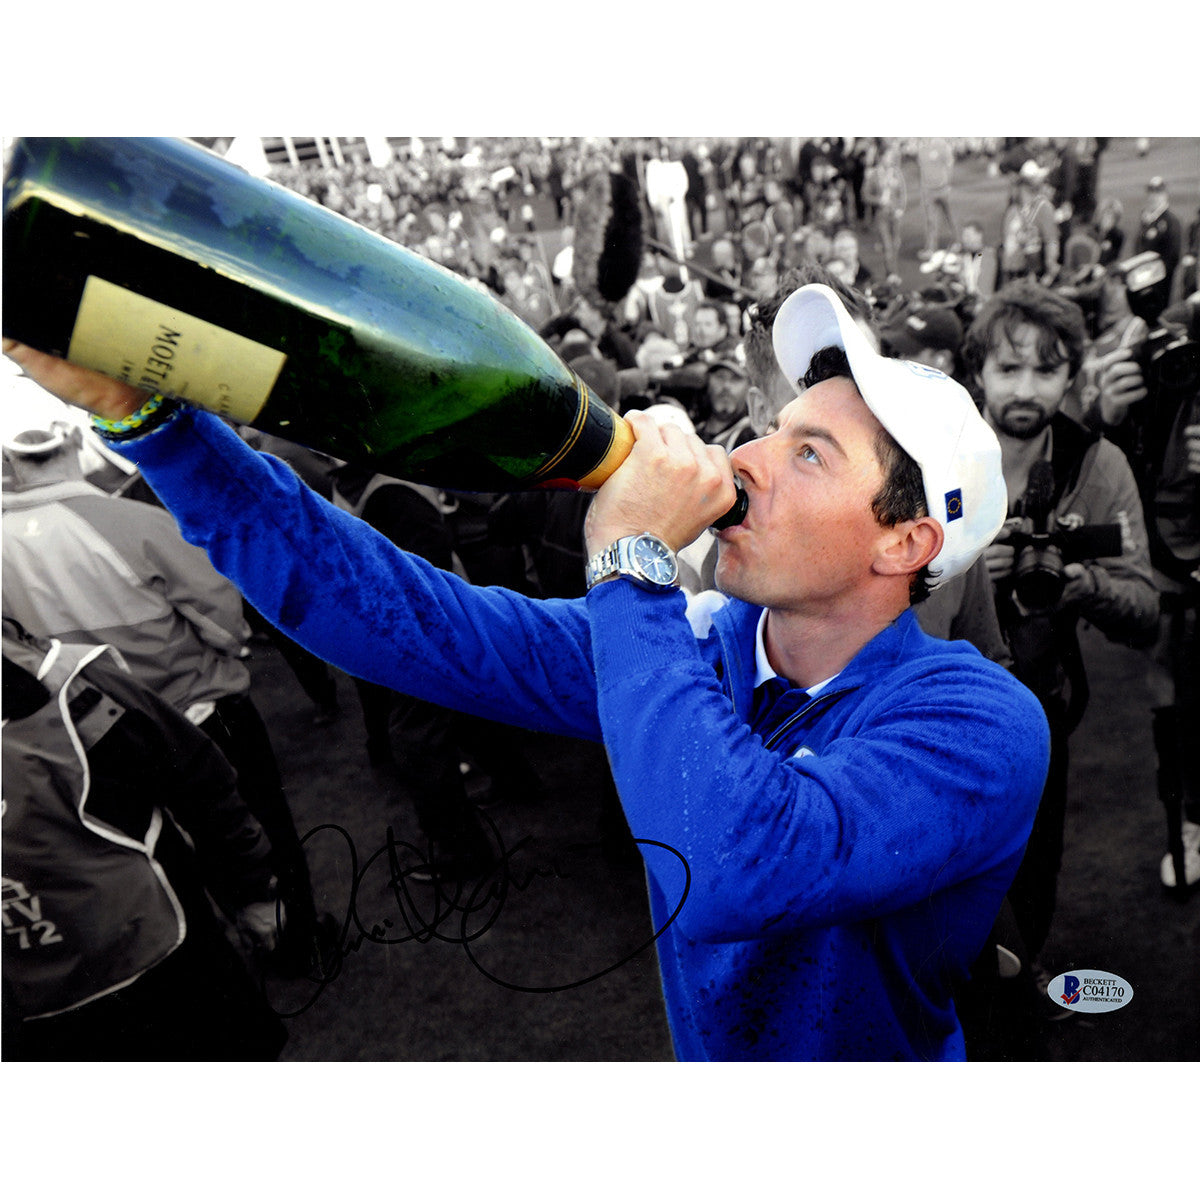 83f5e32a6 Rory McIlroy Signed 11x14 Drinking Champagne Photo Beckett ...